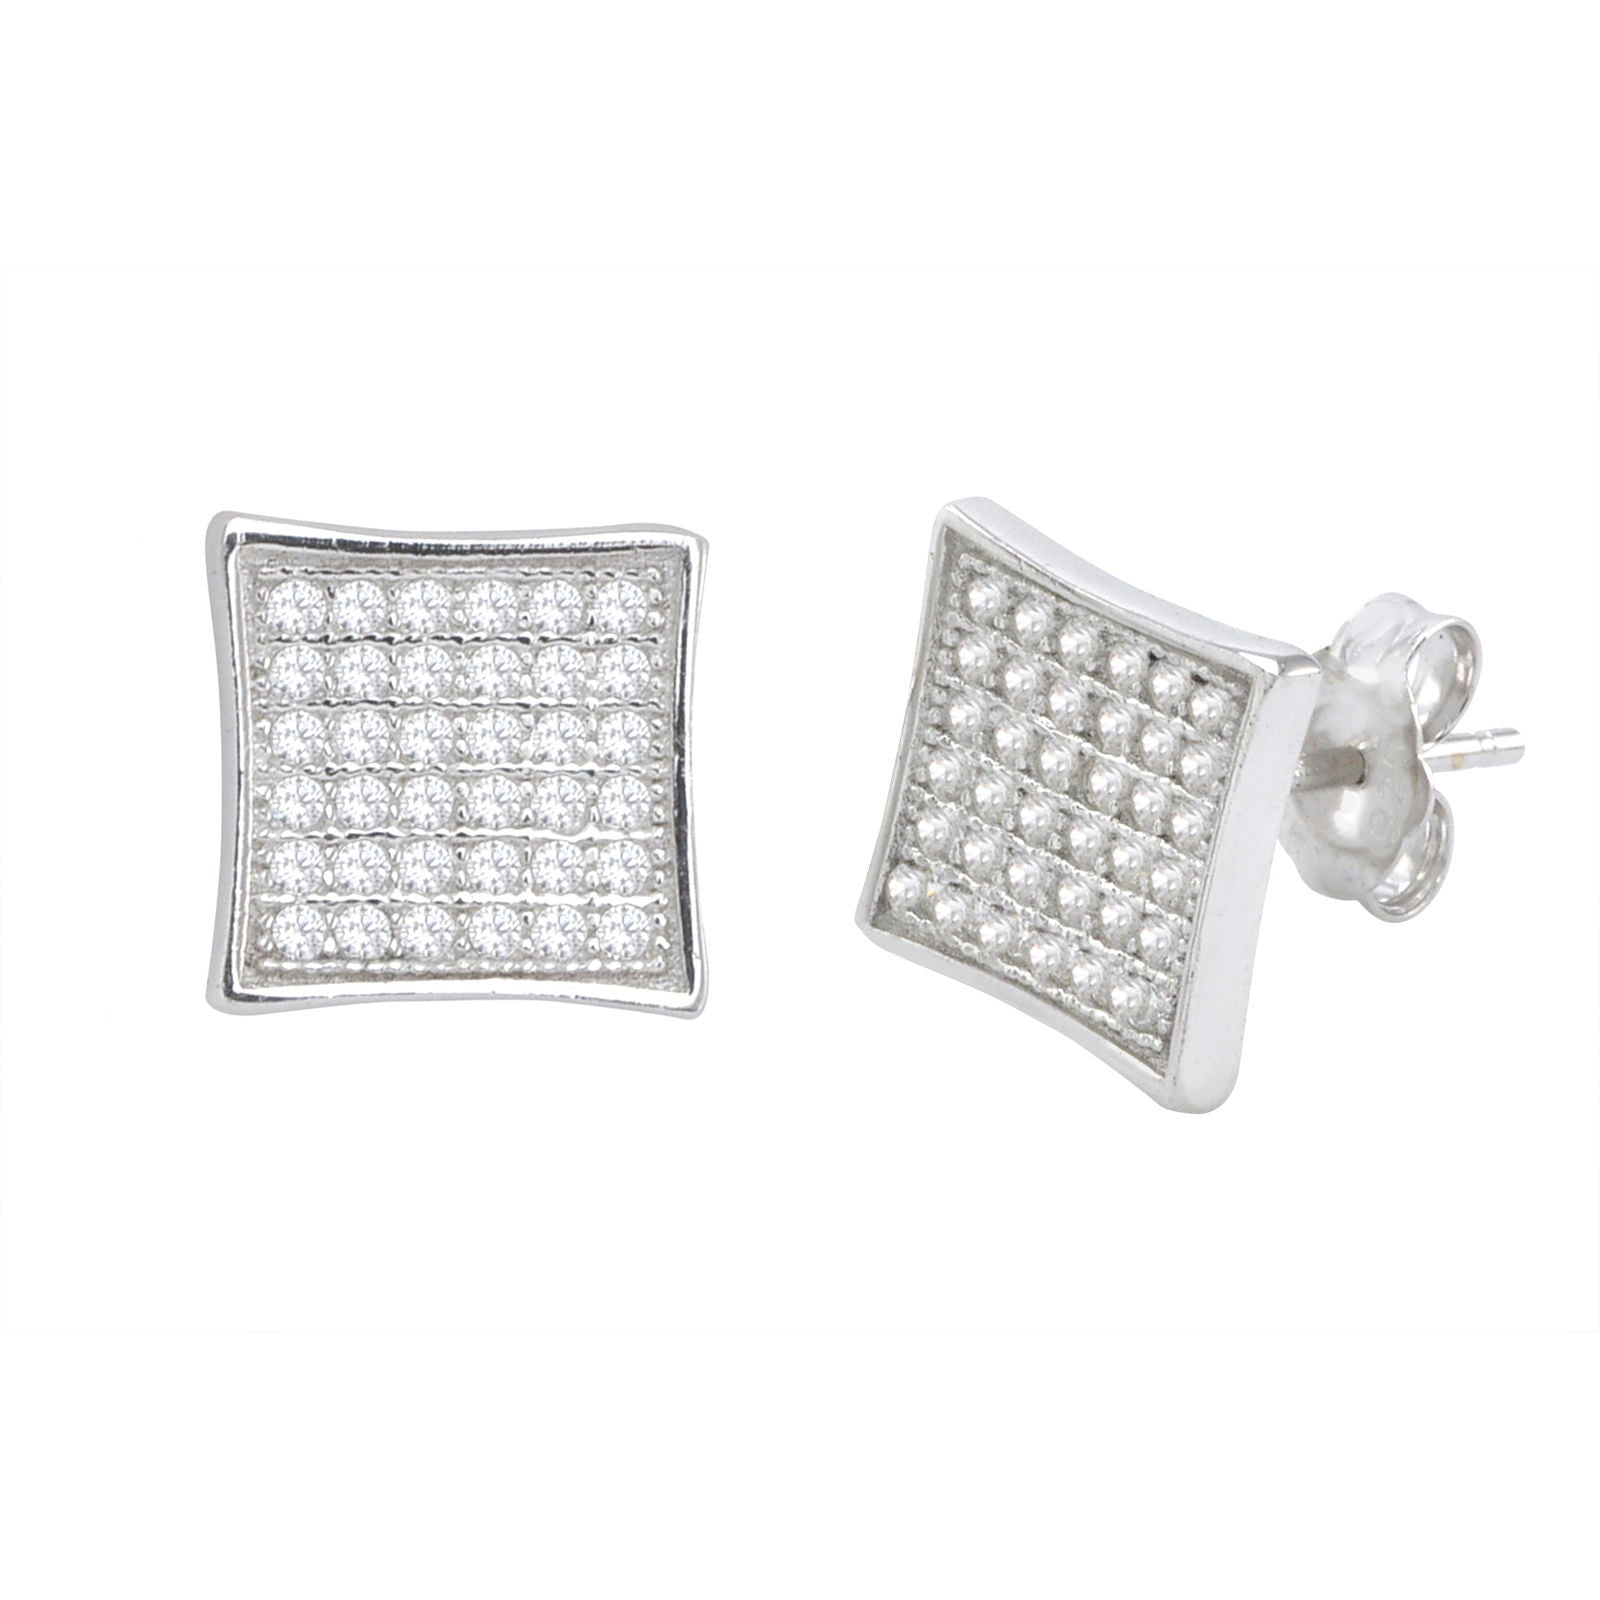 6568479c8 Sterling Silver Stud Earrings Kite Shape Micropave Clear CZ 10mm |  Jewelryland.com